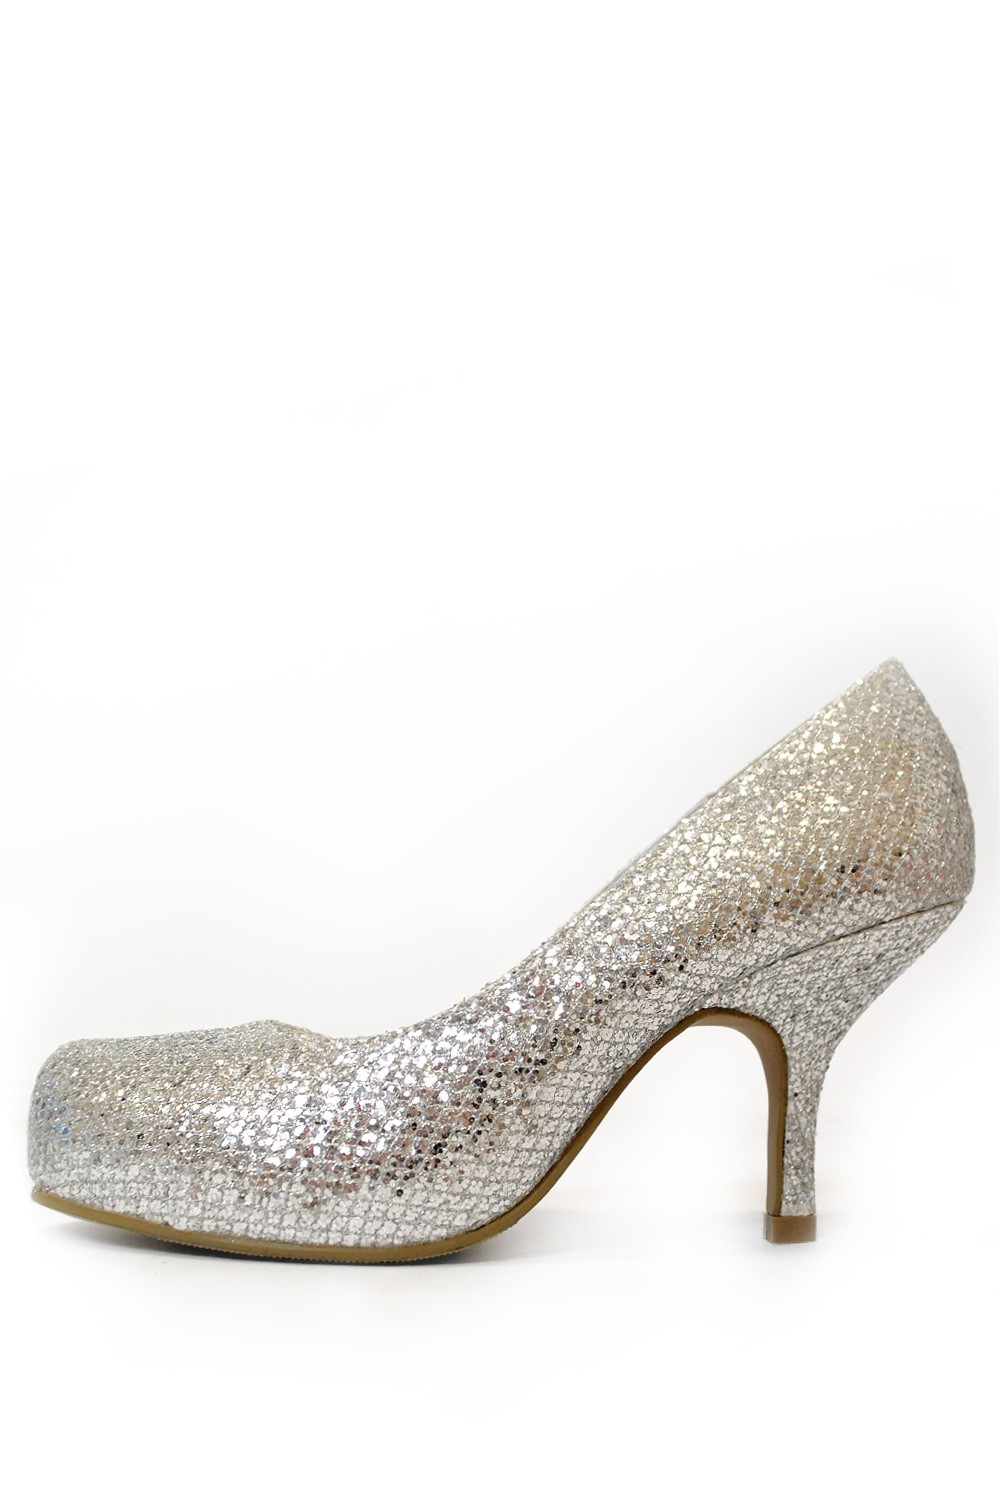 247 Ellis Metallic Mid Heel Court Shoe in Silver | iCLOTHING